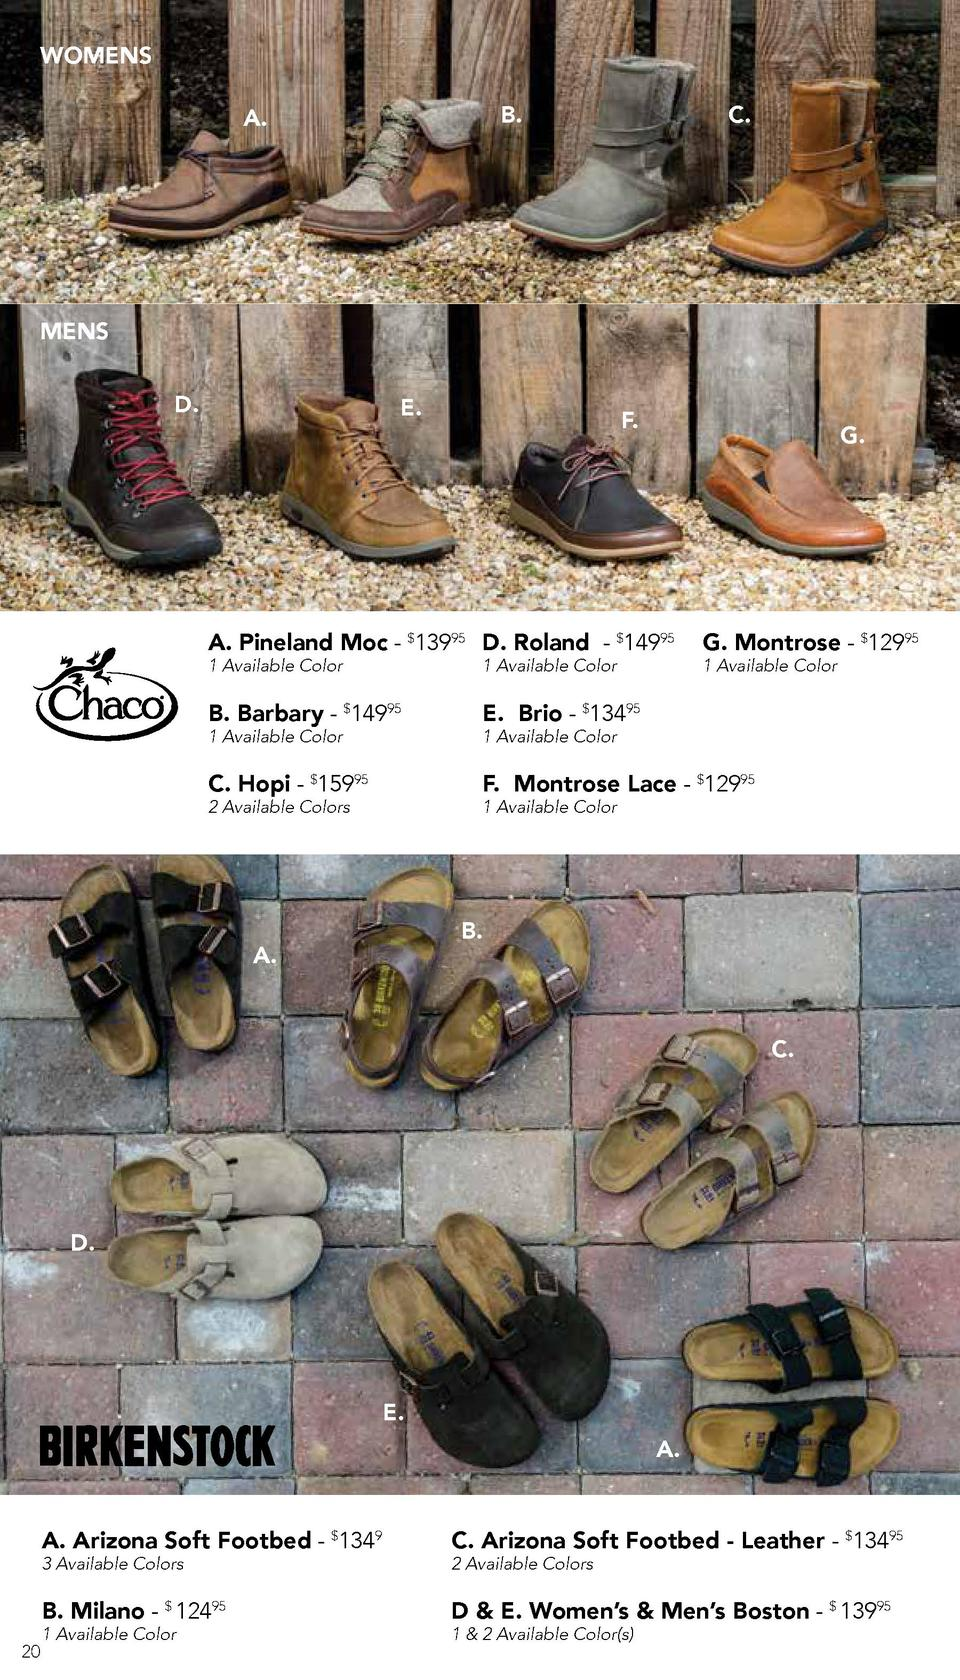 WOMENS B.  A.  C.  MENS D.  E.  F.  G.  A. Pineland Moc -  13995 D. Roland -  14995  G. Montrose -  12995  1 Available Col...